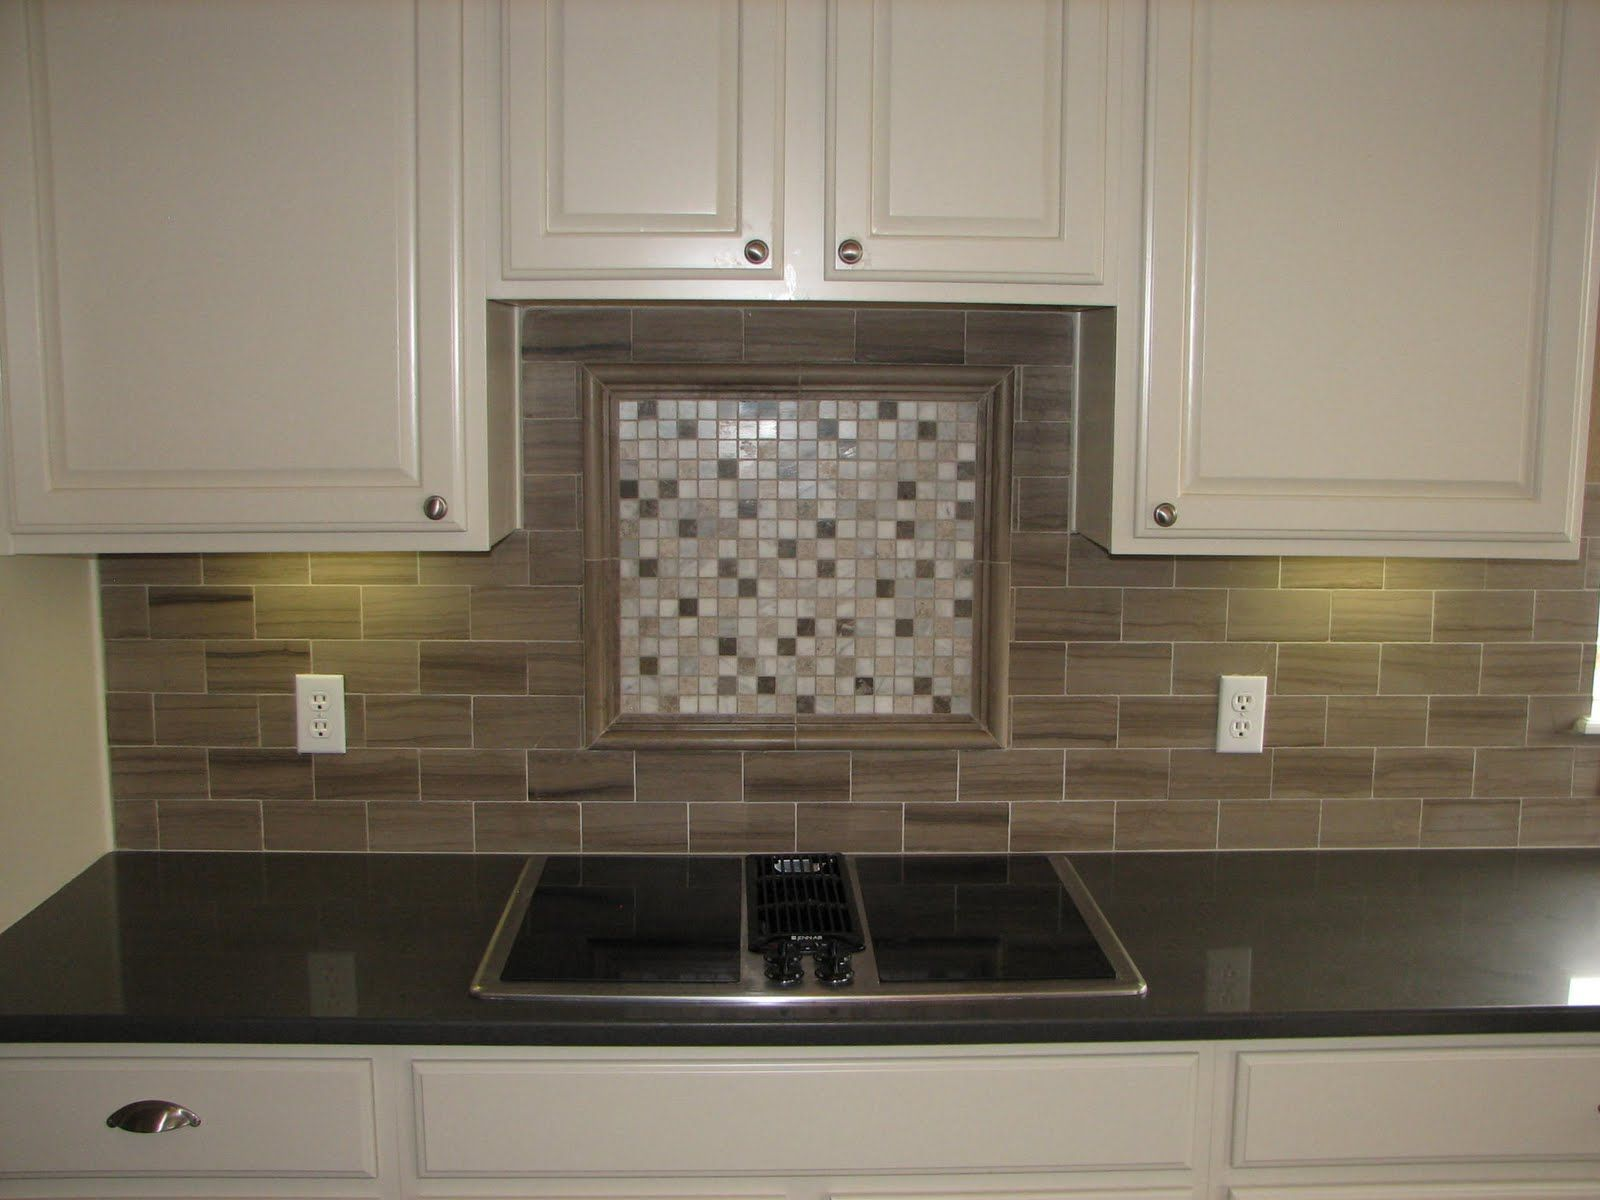 Tile backsplash with black cuntertop ideas tile Bathroom designs with tile backsplashes